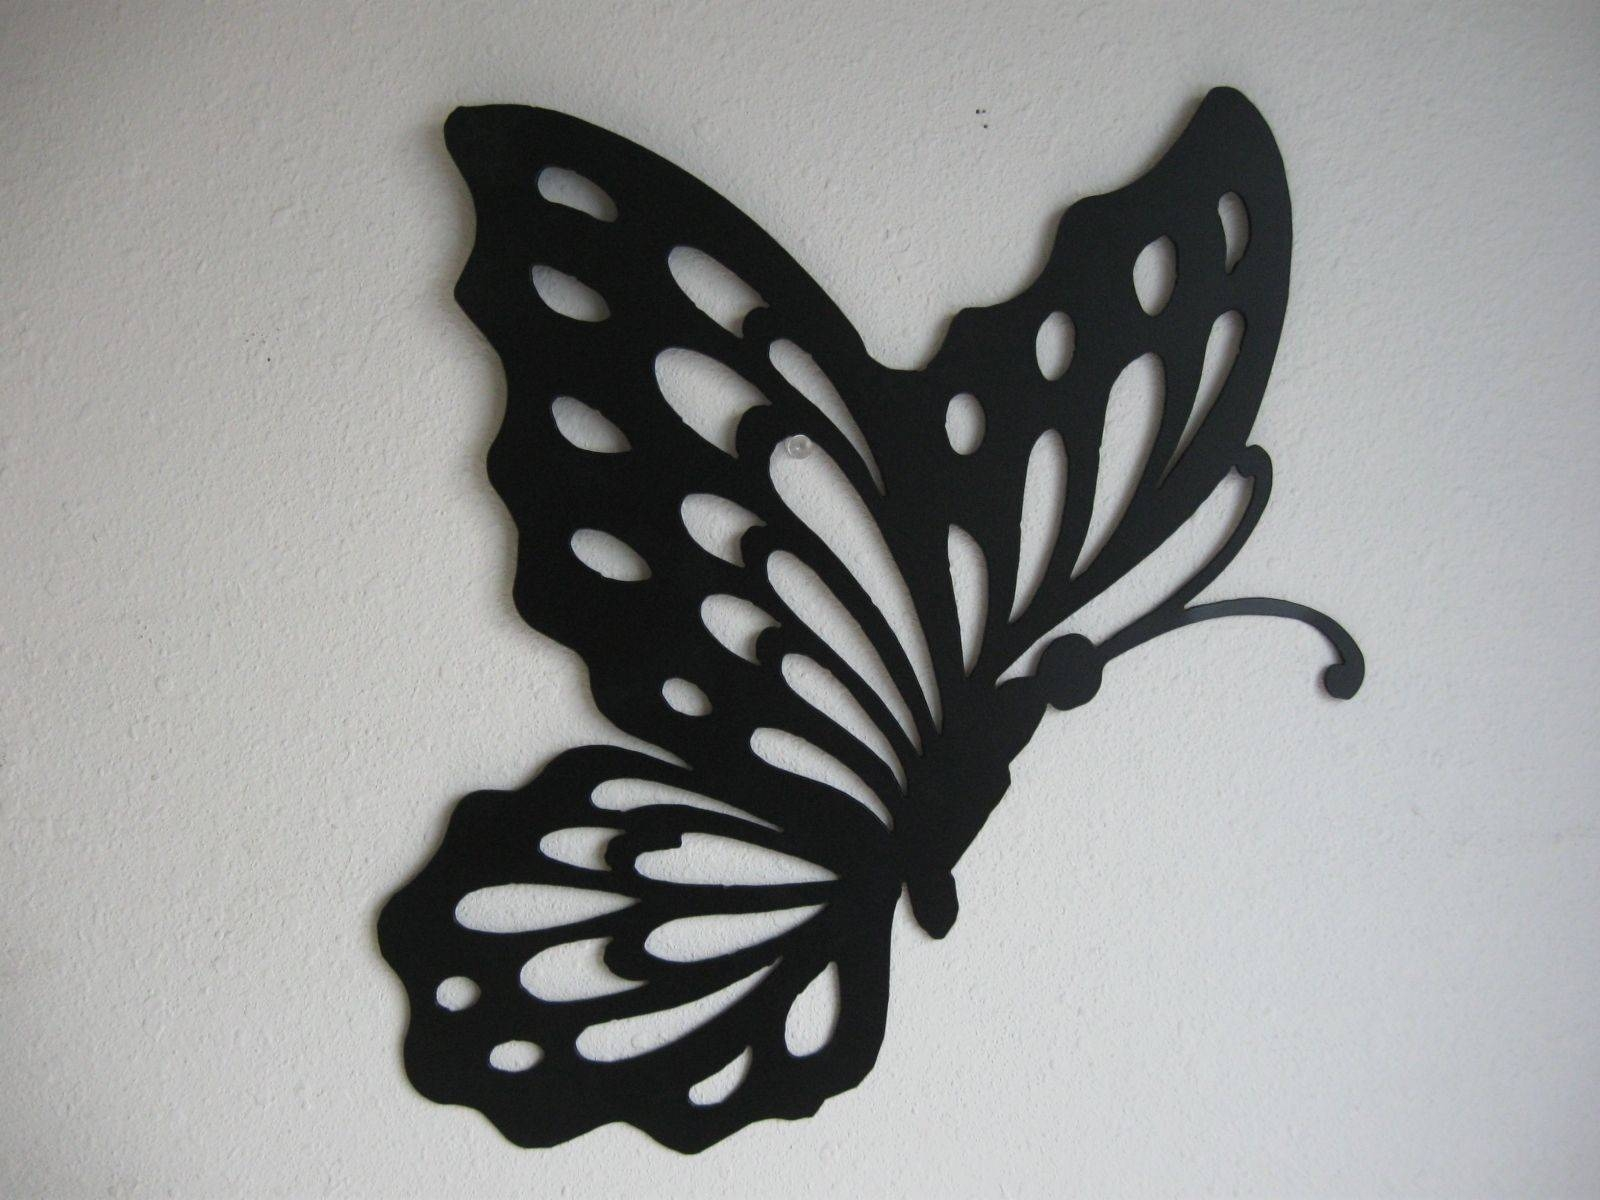 Metal Butterfly Wall Decor — Creative Home Decoration Throughout 2017 Butterflies Metal Wall Art (View 7 of 20)